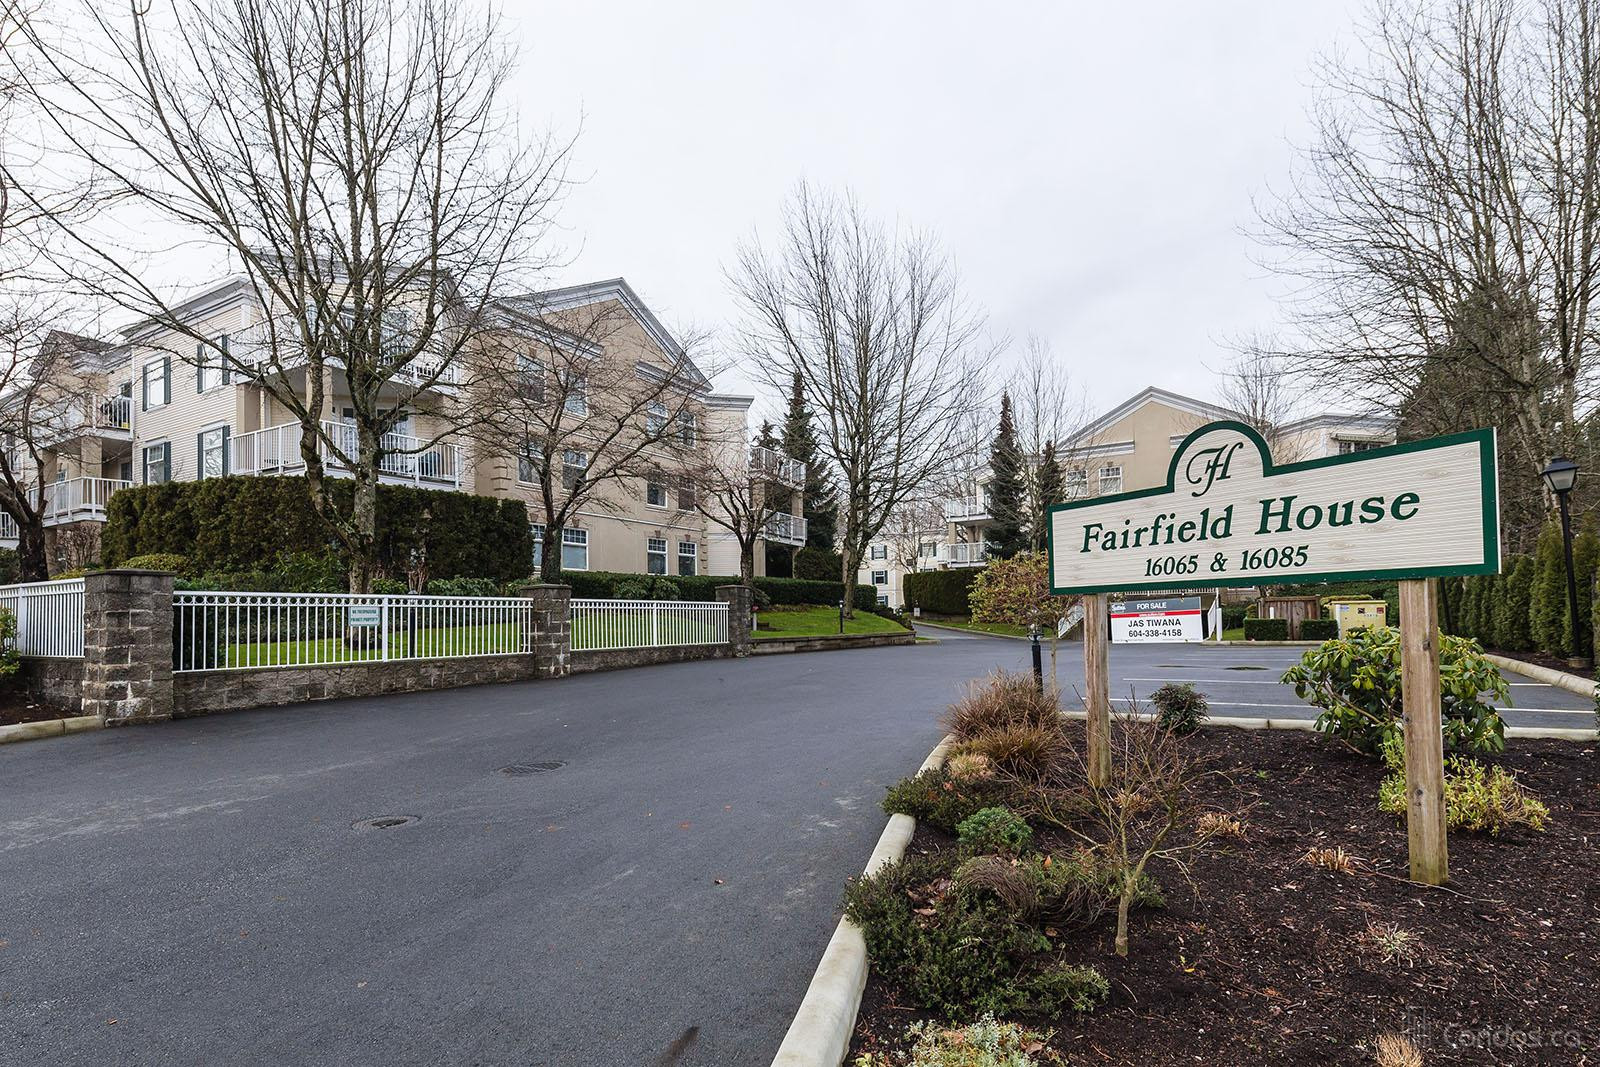 Fairfield House at 16065 83 Ave, Surrey 1